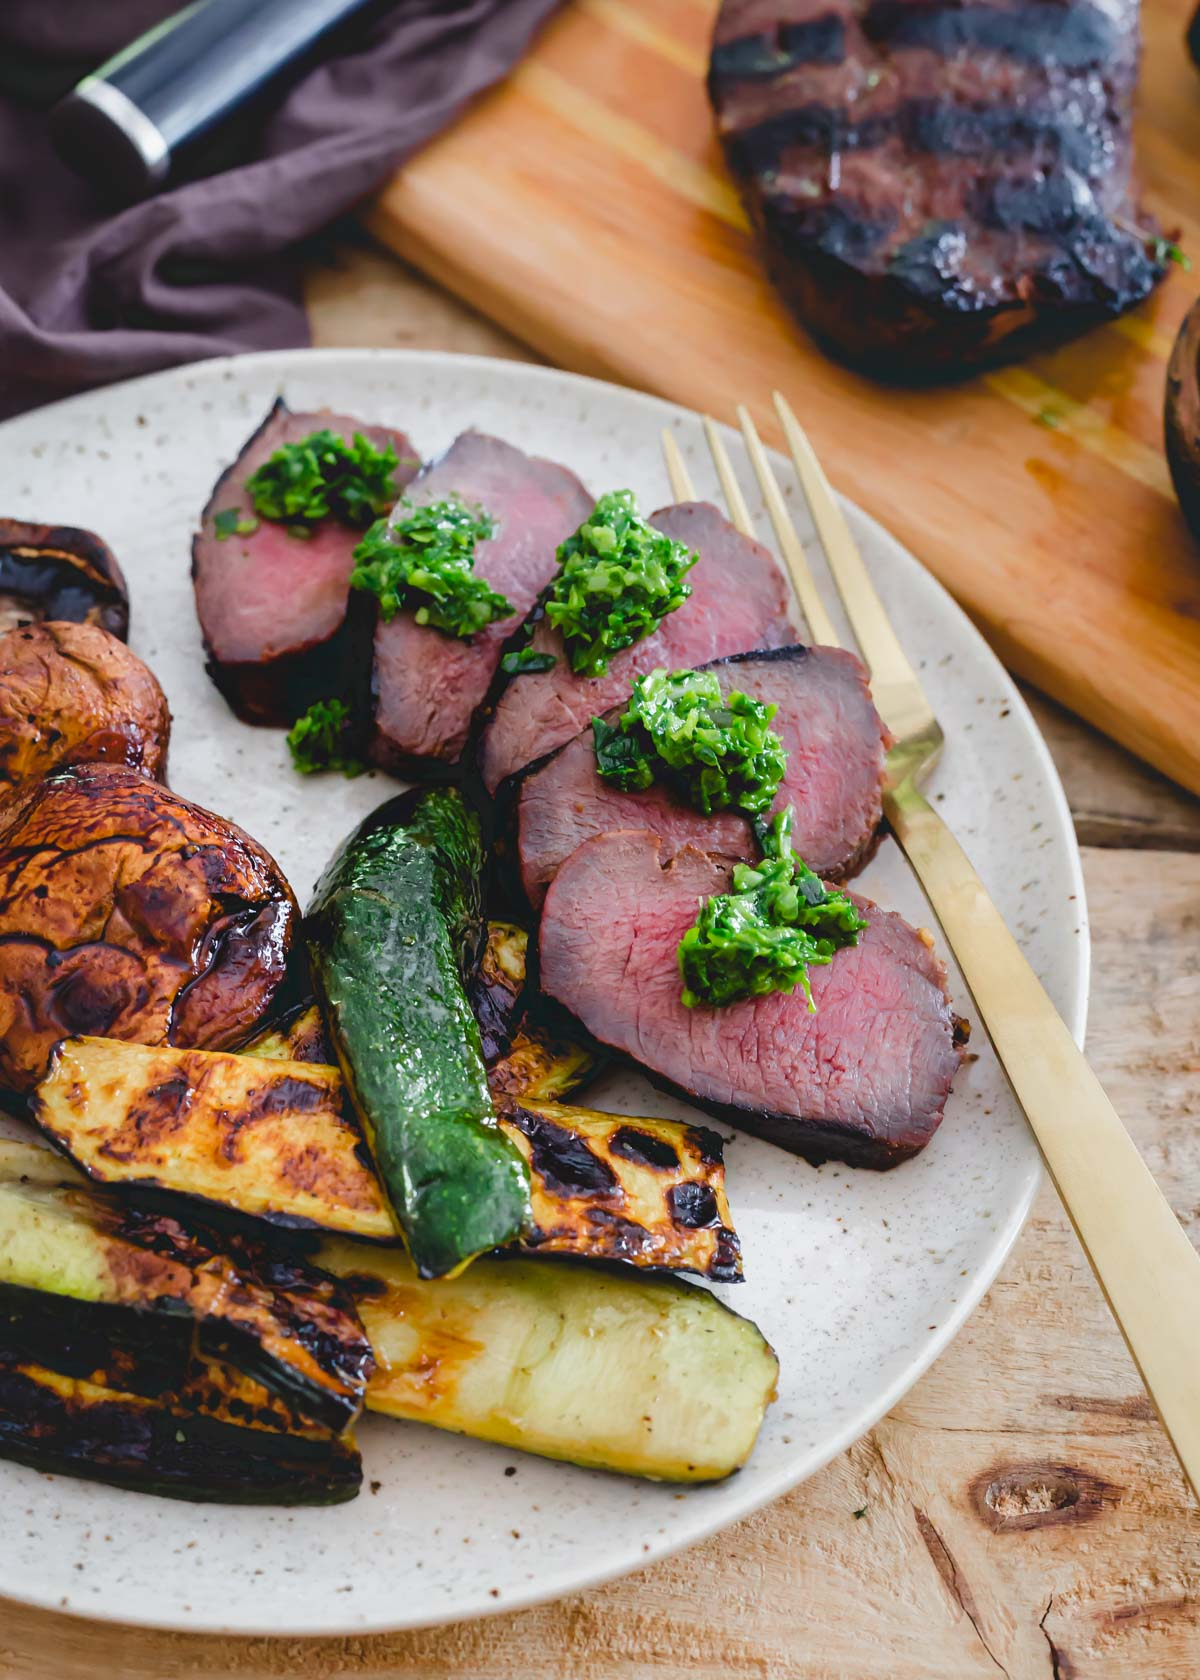 Medium rare grilled venison backstrap sliced and served with pesto and grilled vegetables on a plate.